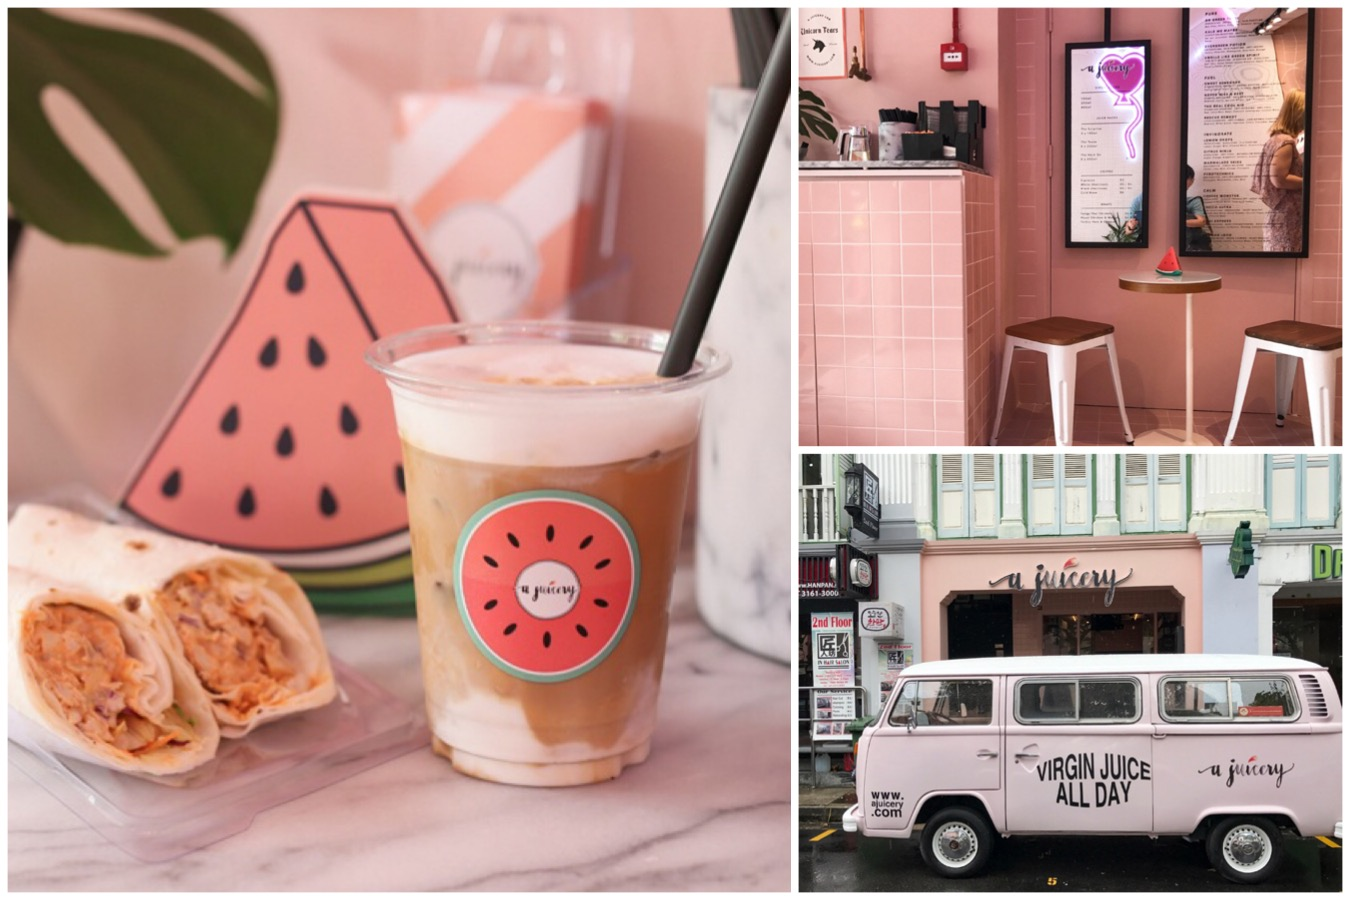 A Juicery - Pink Cafe & Juice Place At Lor Telok, Look Out For The *Secret* Strawberry Latte